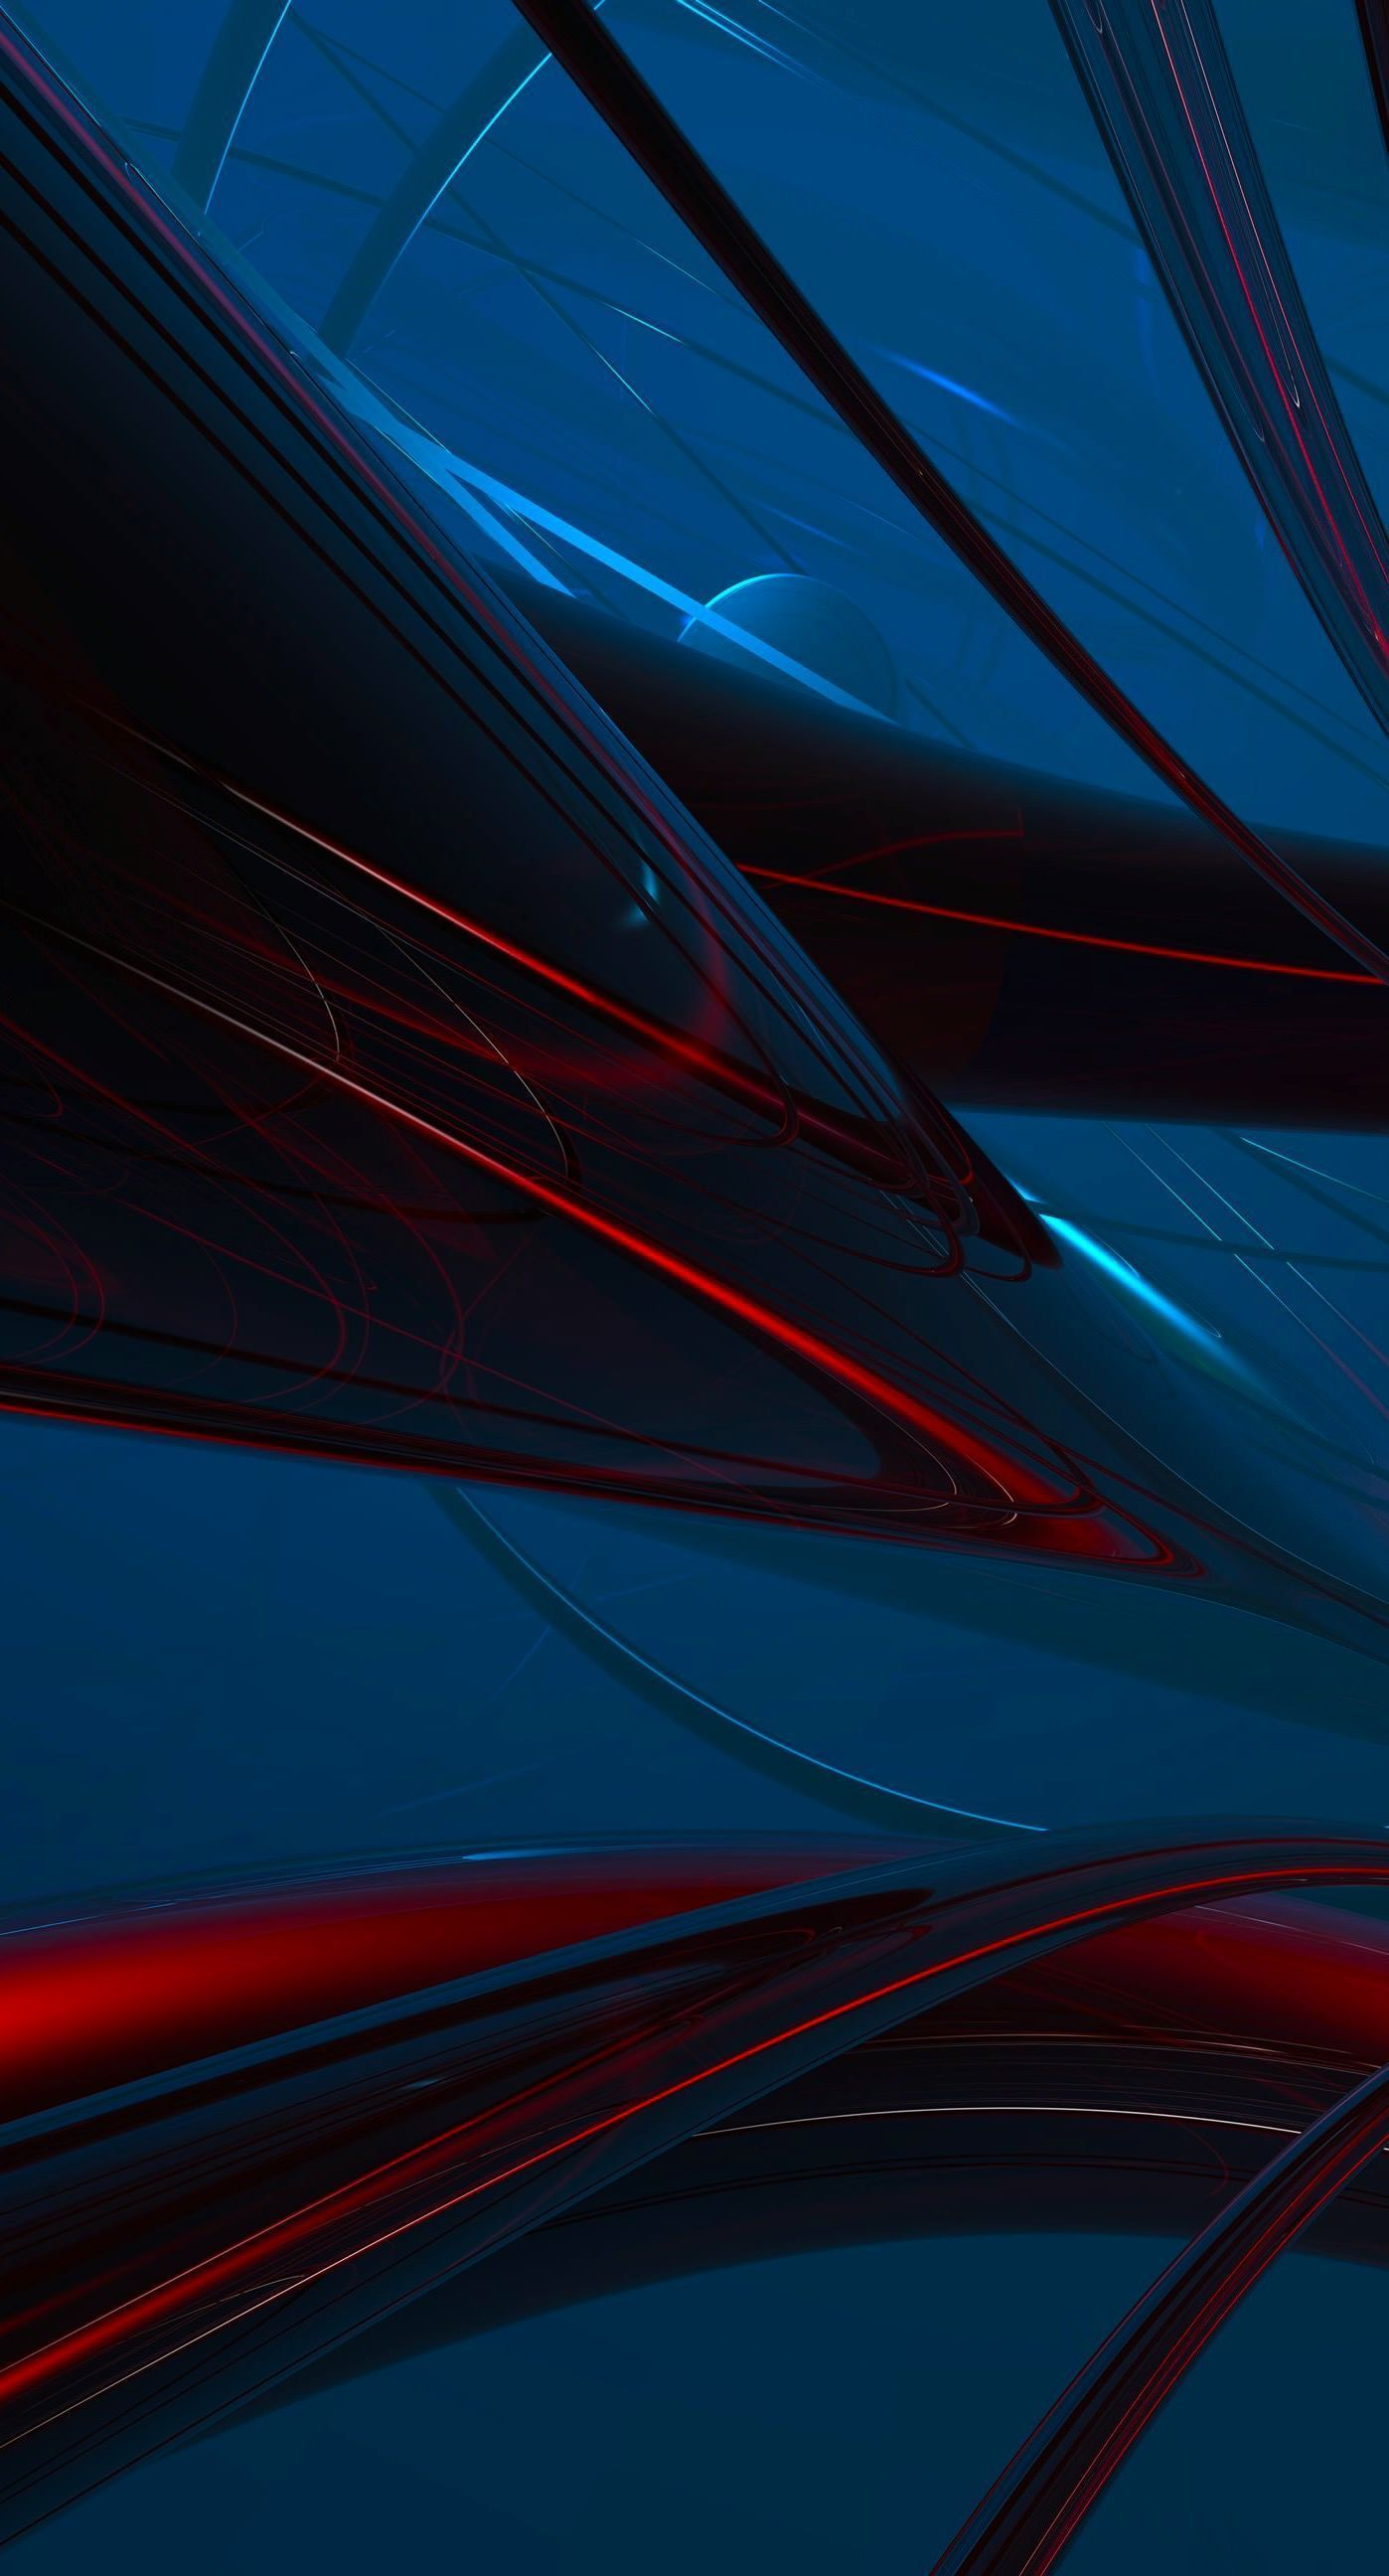 Red And Blue Digital Wallpaper Abstract Digital Art Minimalism Simple Background 3d Abstract Lines Abstract Digital Art Digital Wallpaper Abstract Wallpaper